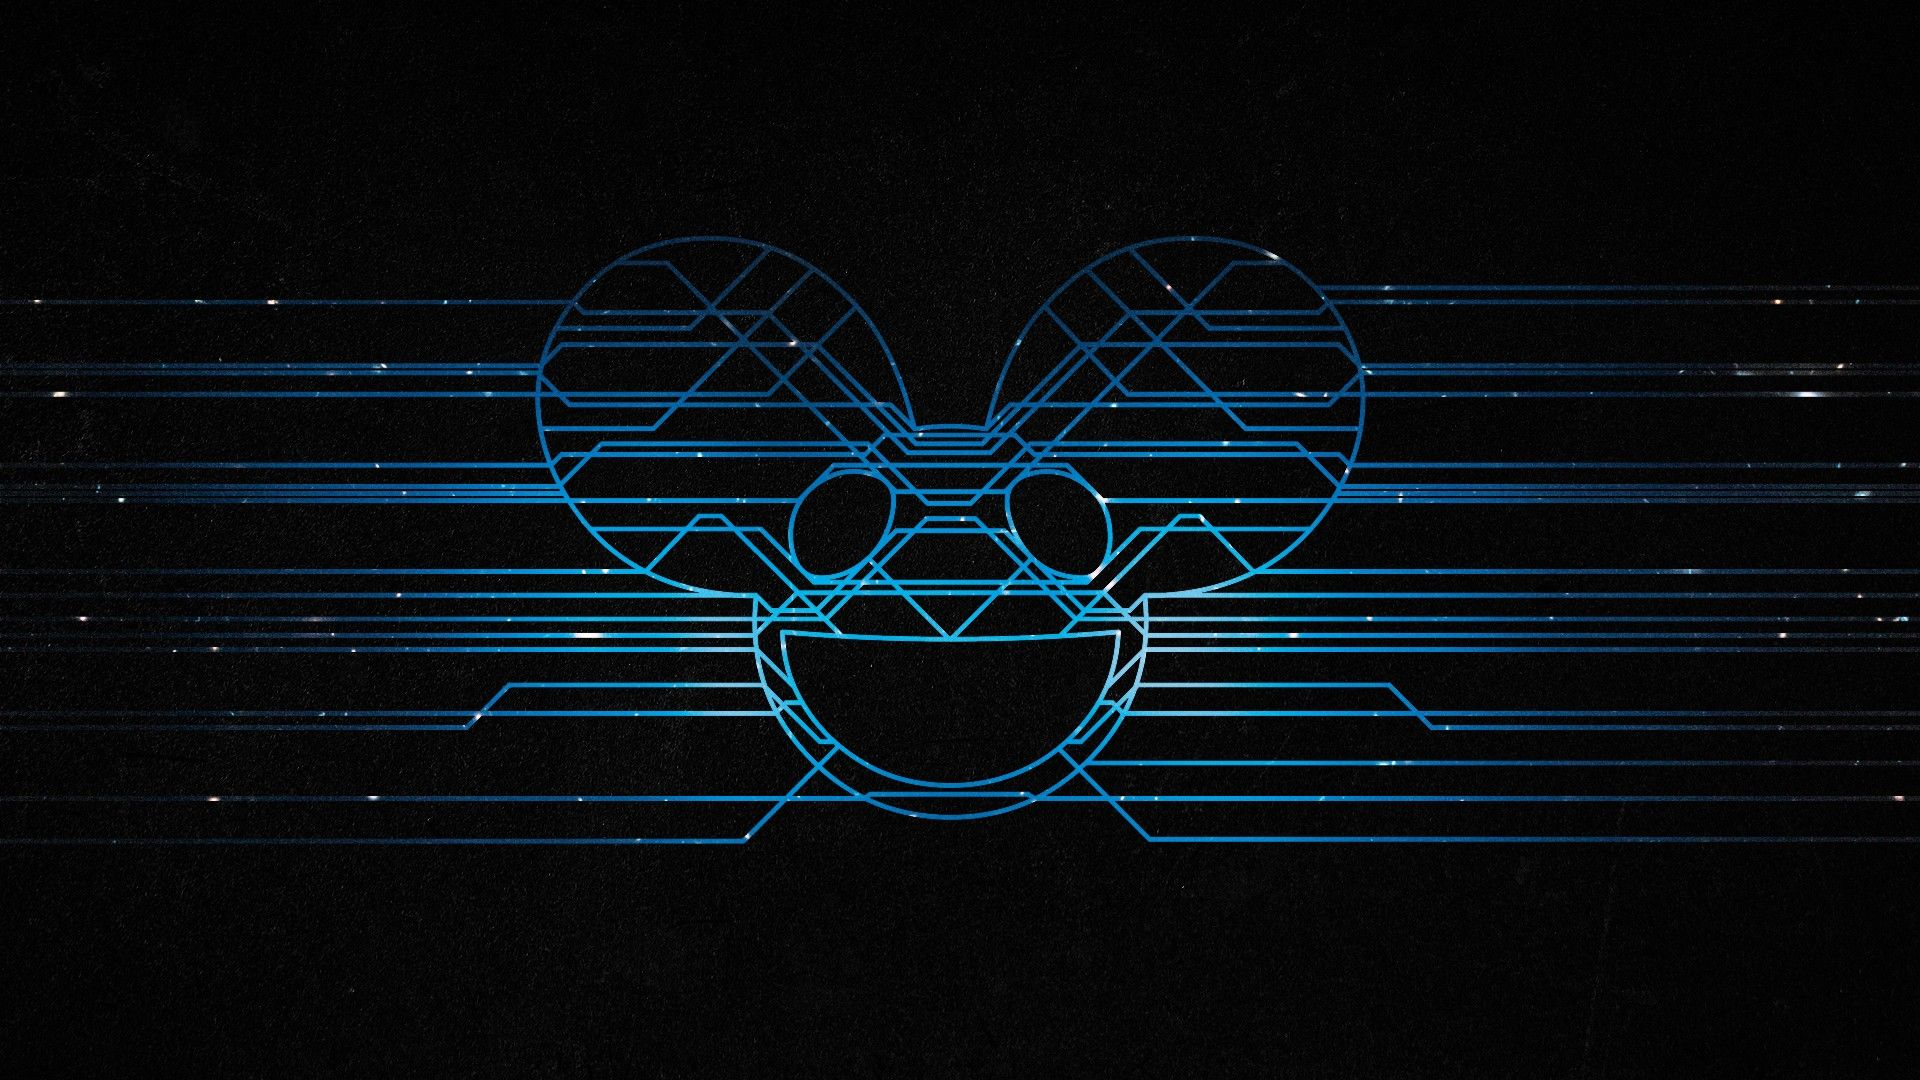 1920x1080 Deadmau5 wallpaper ·① Download free full HD wallpapers for desktop ...